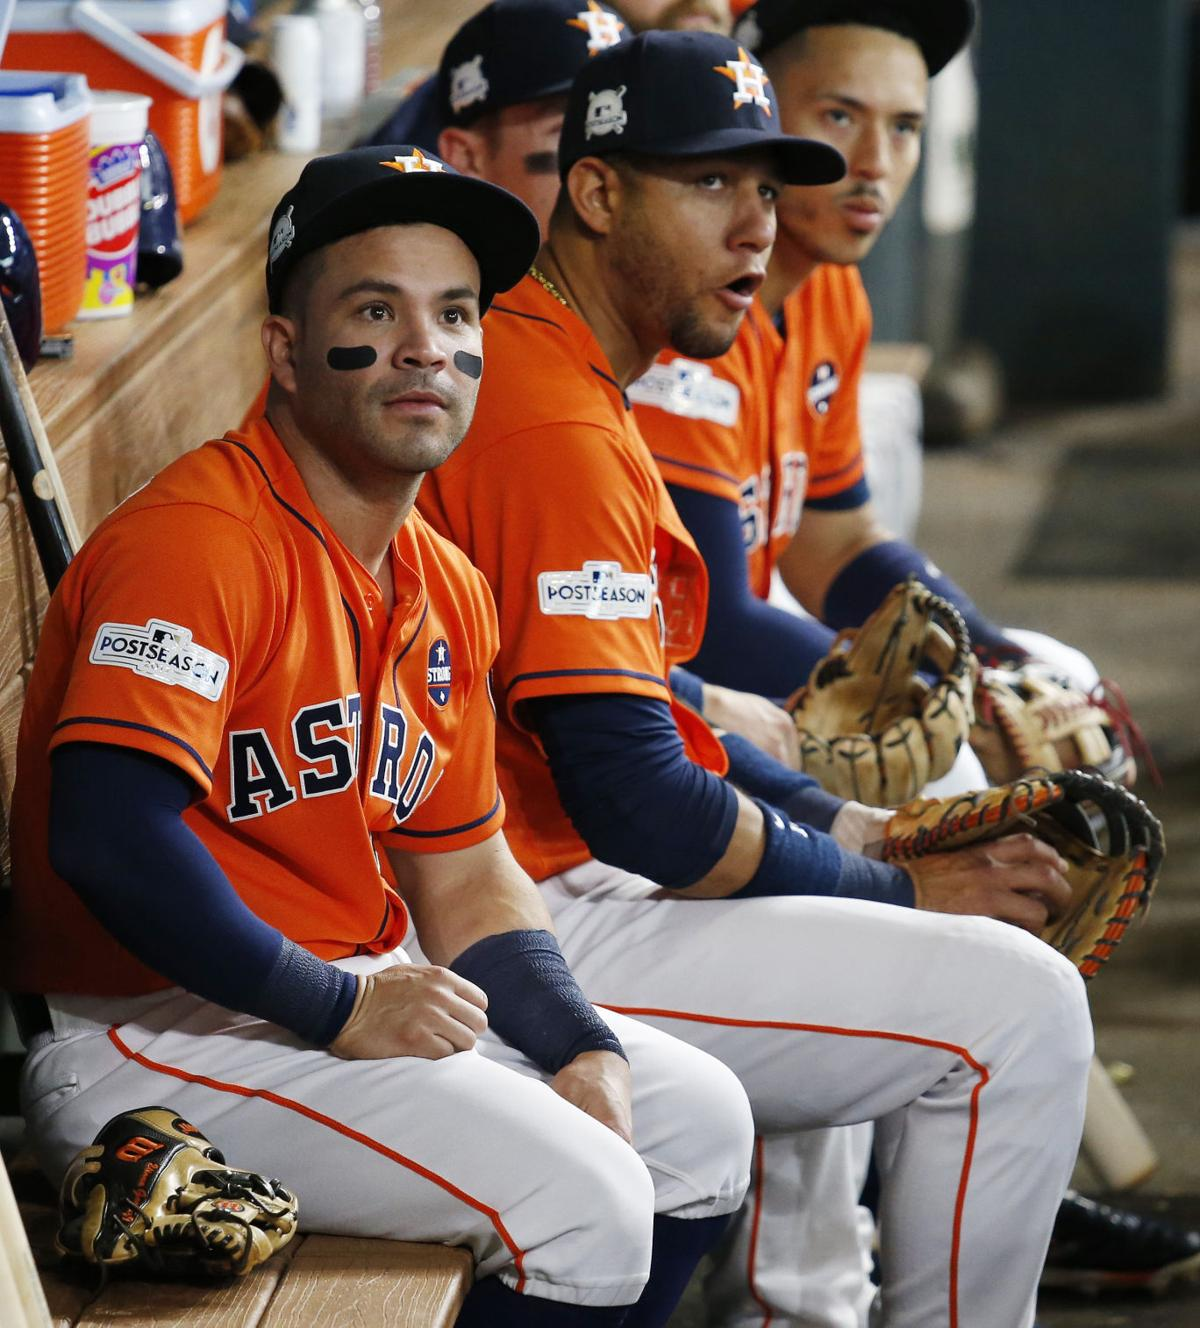 Photos: Astros ALDS Game 2 | In Focus | The Daily News